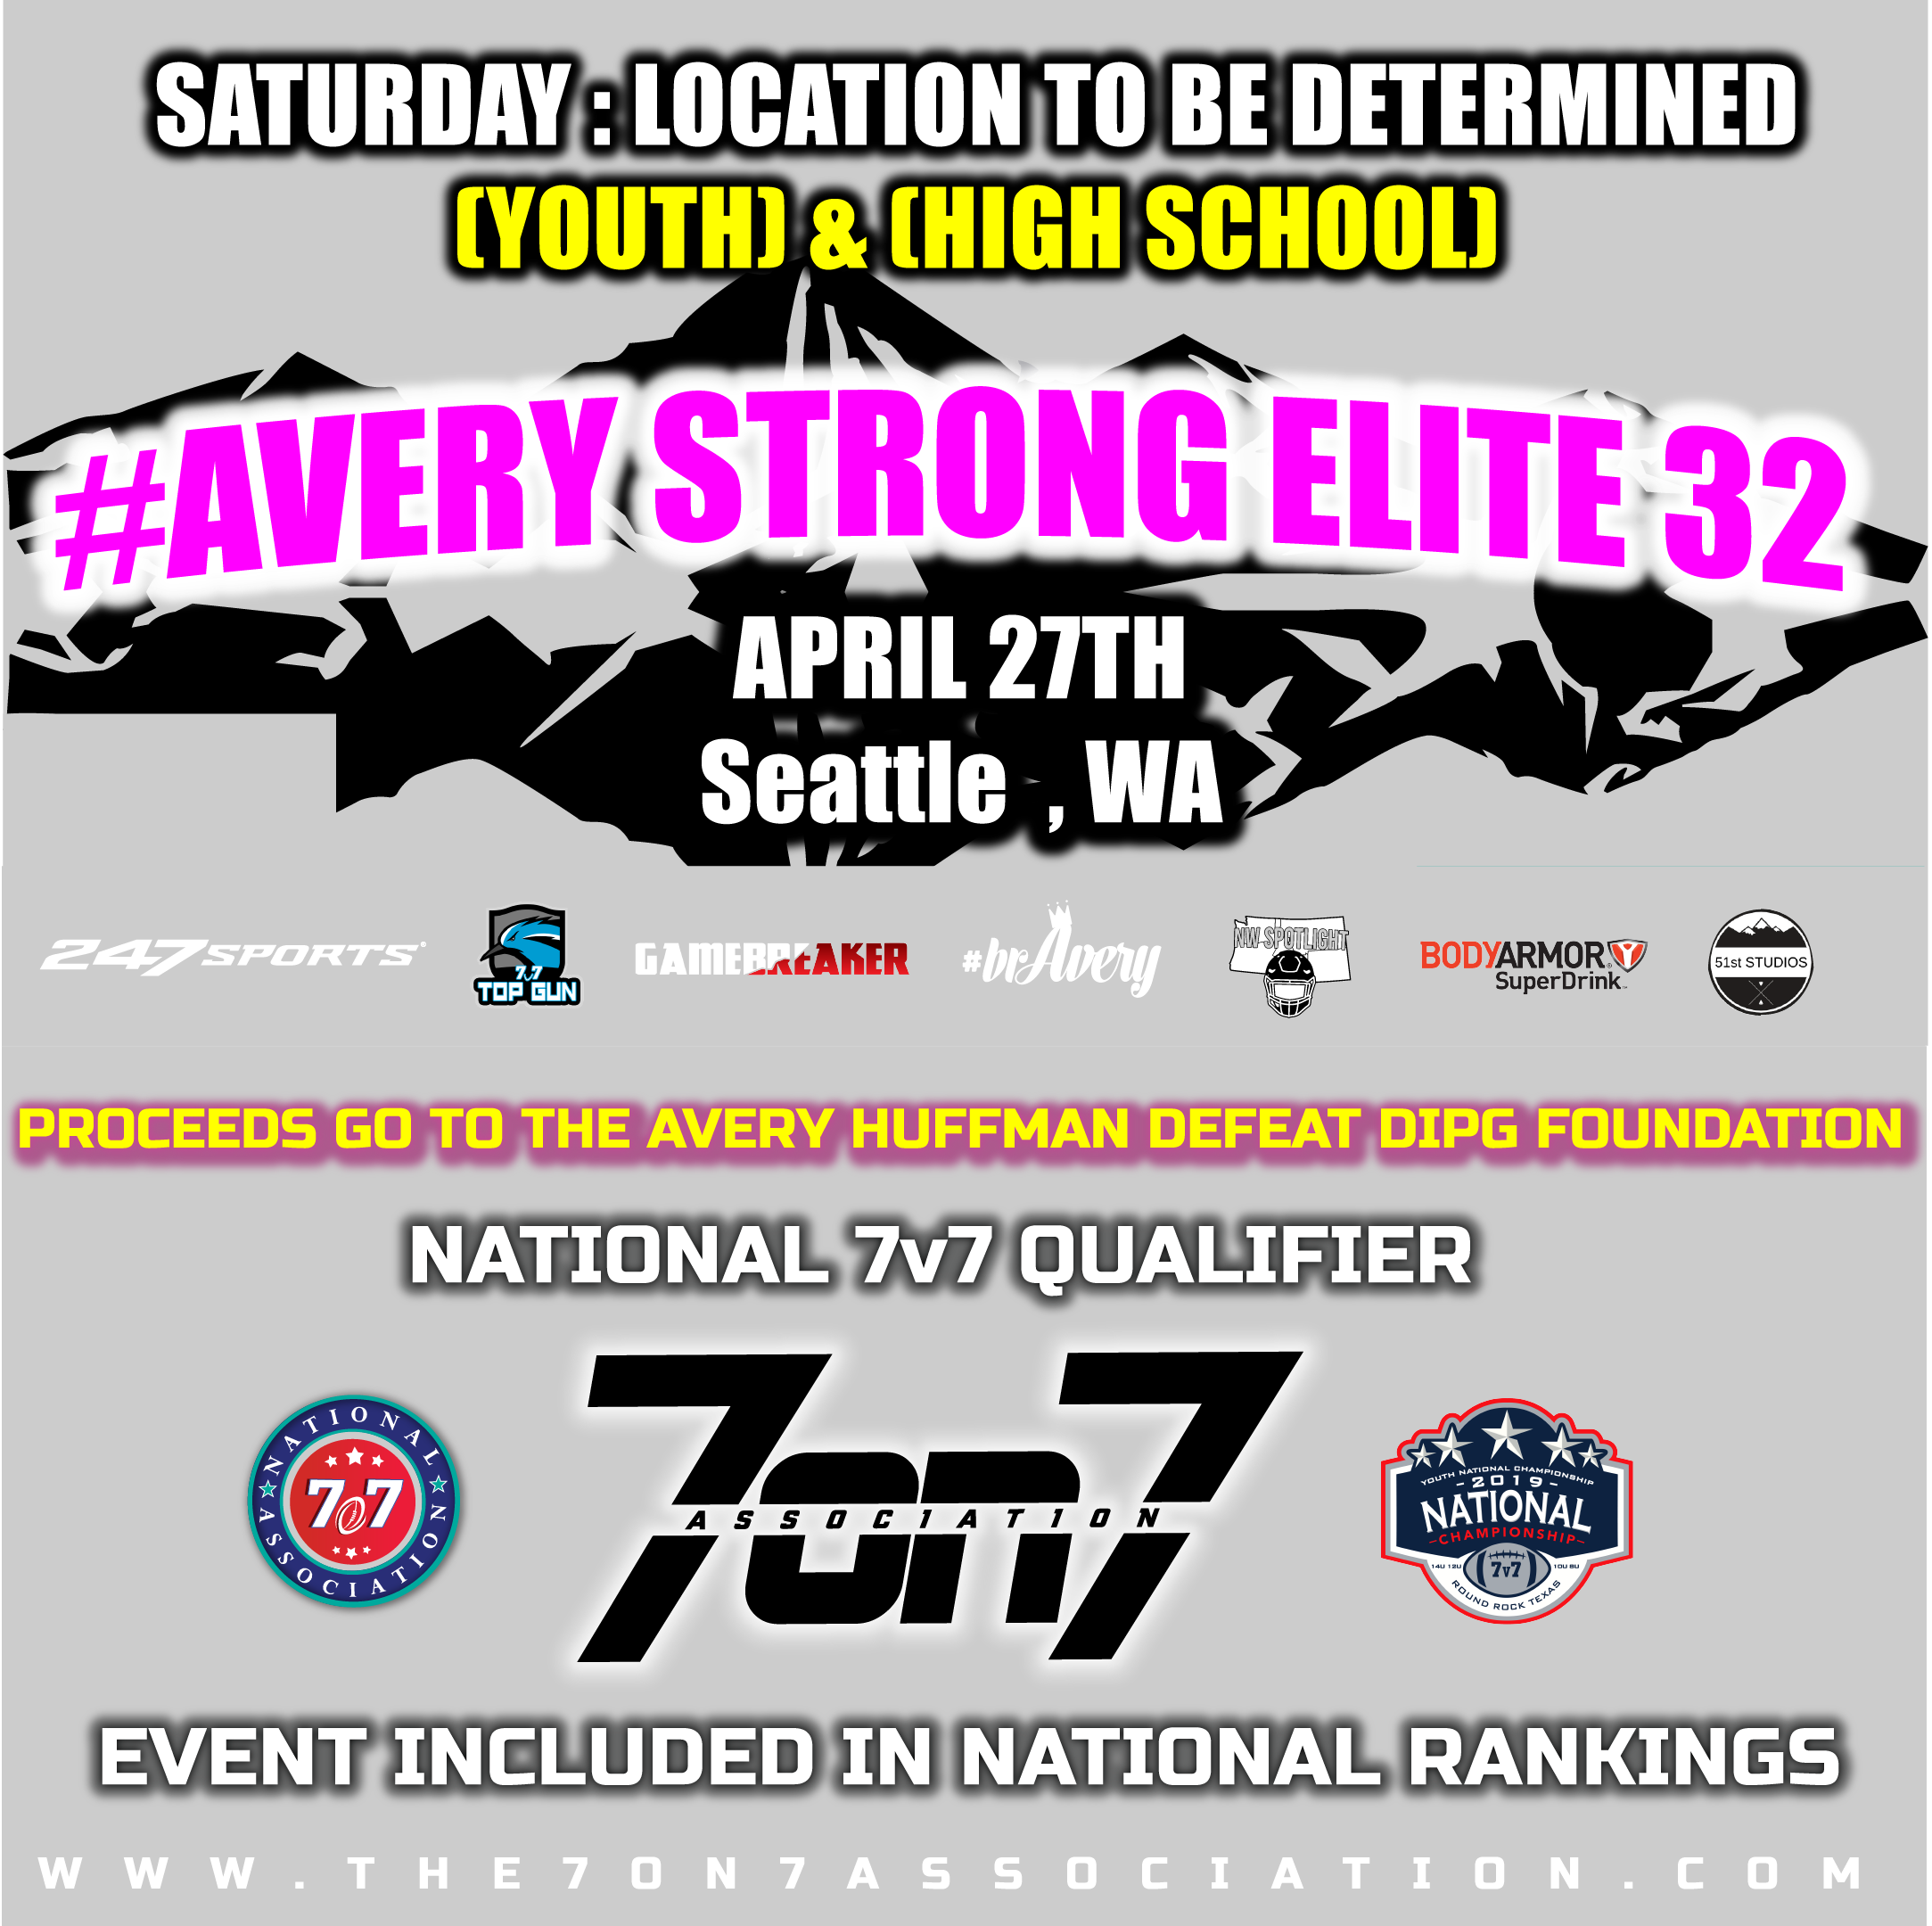 #AveryStrong Elite 32.png